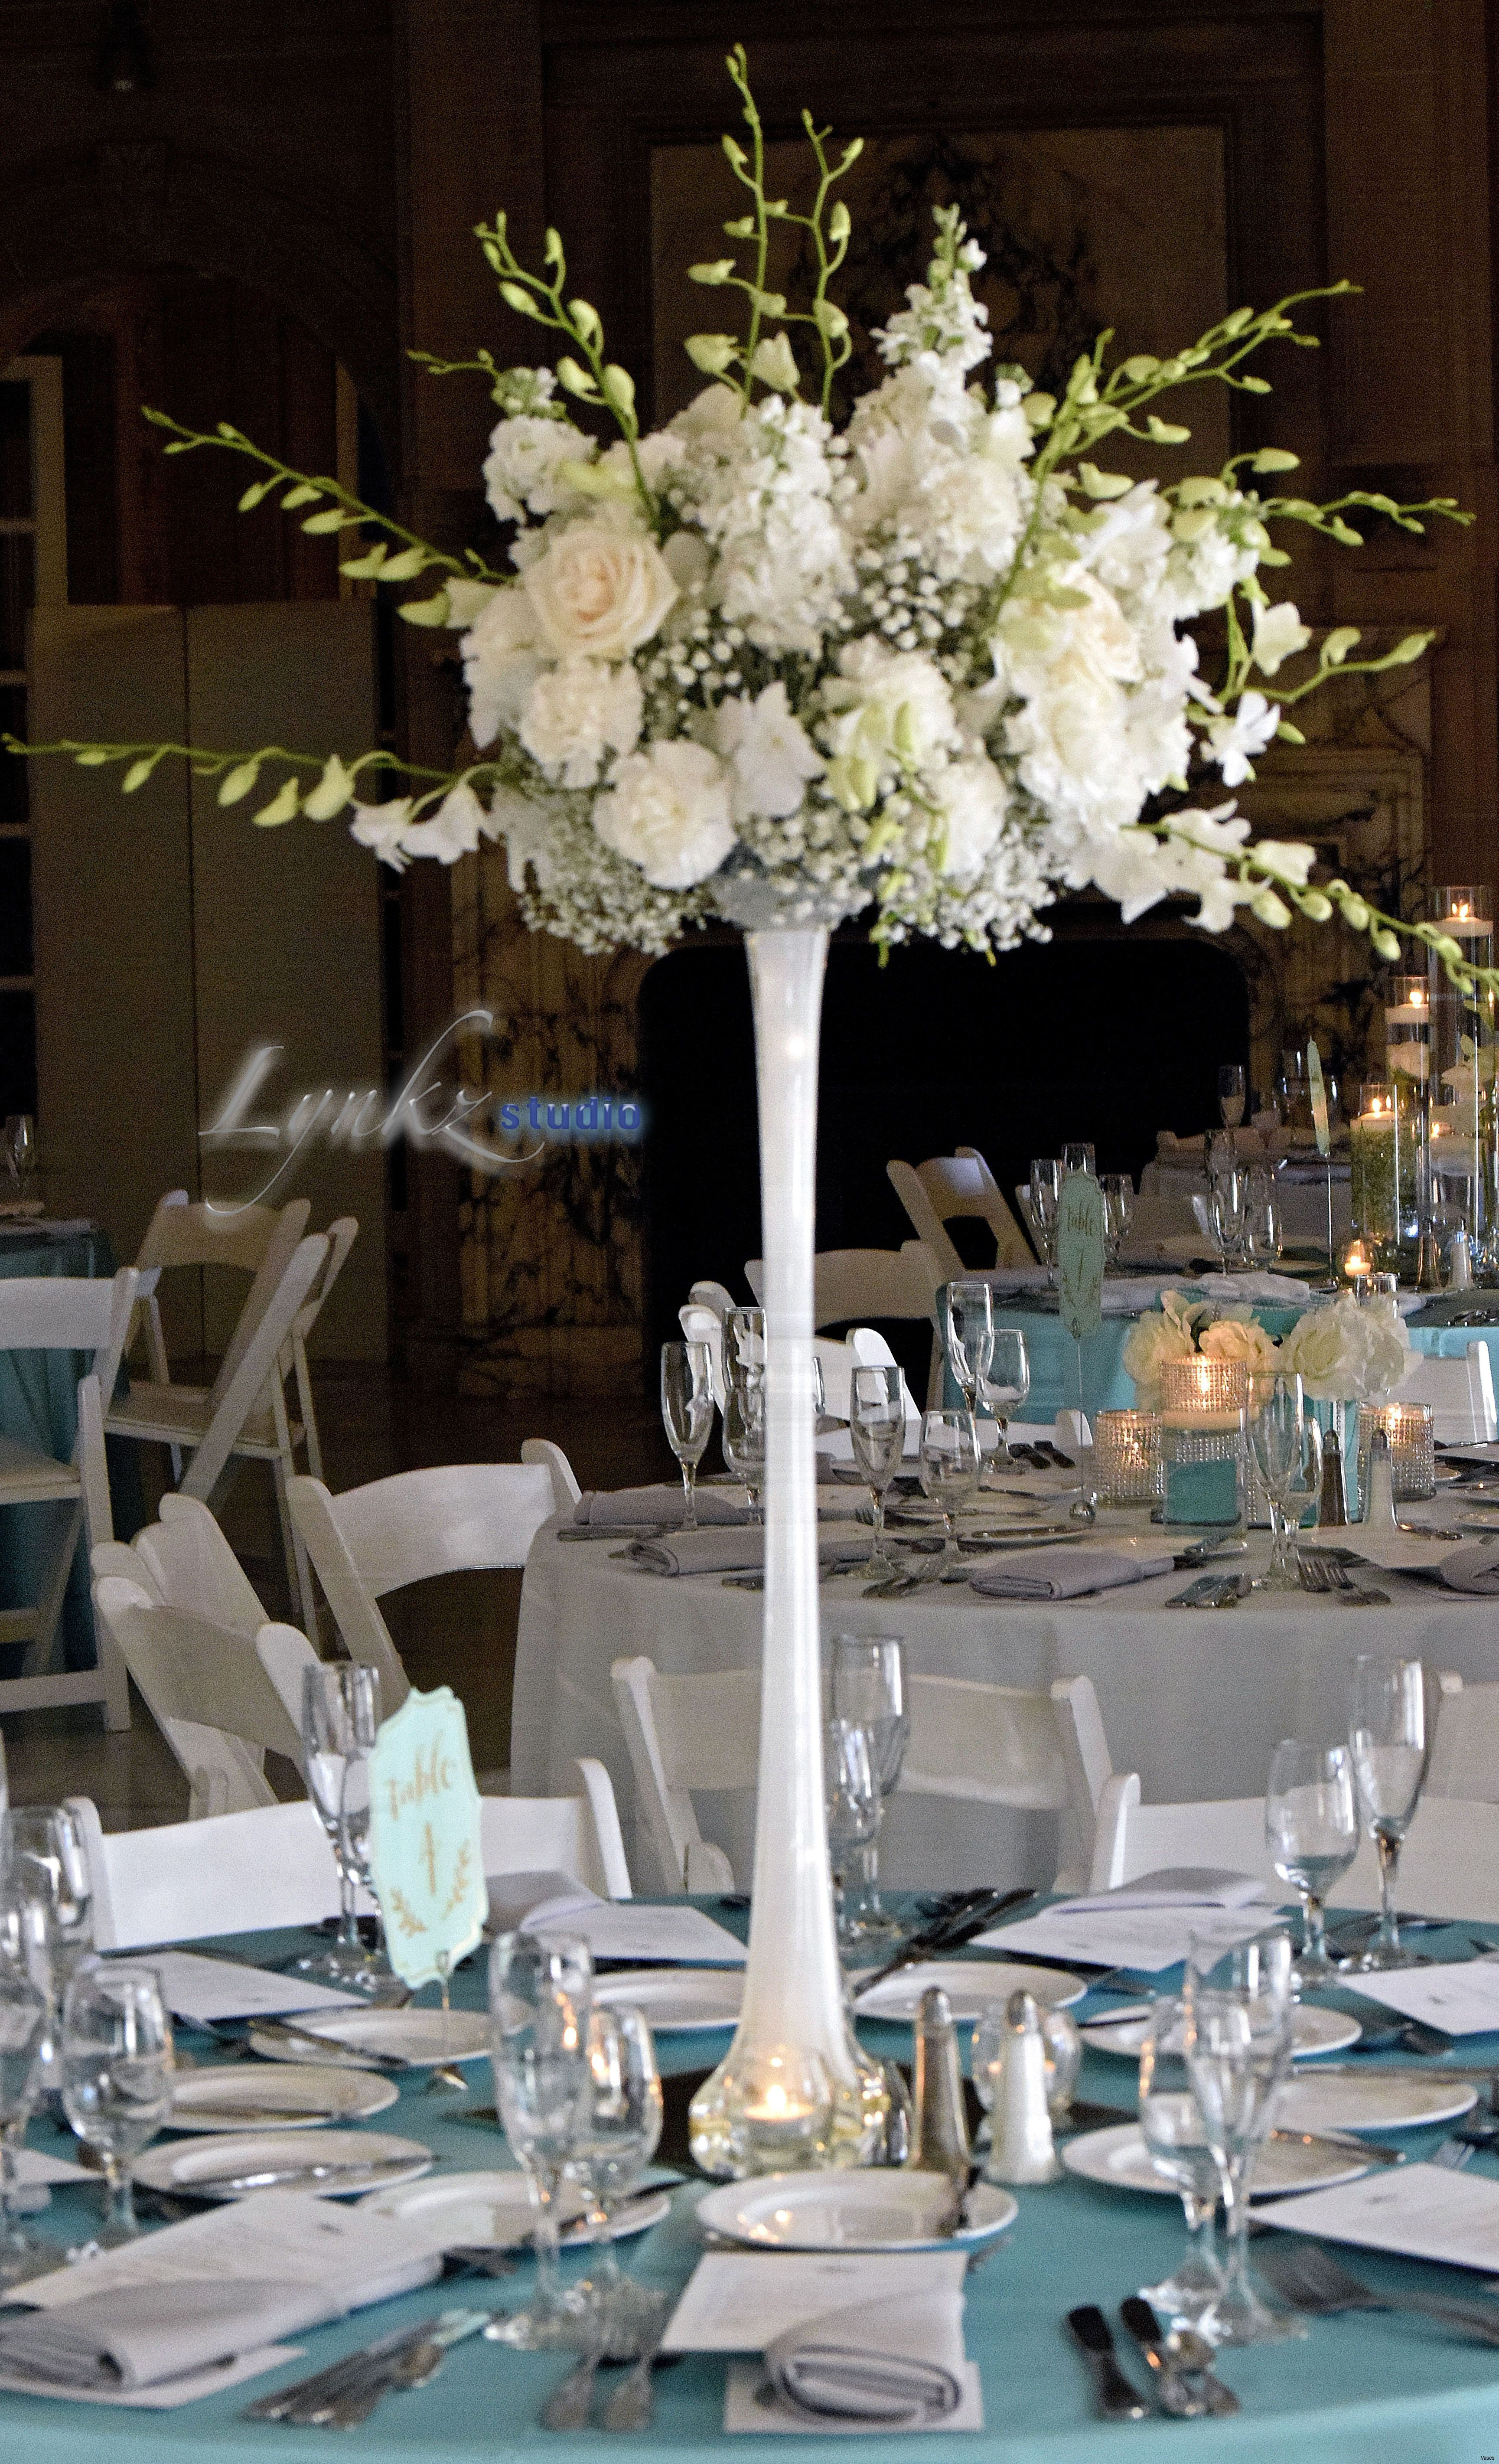 27 Wonderful Small Round Vase Flower Arrangements 2021 free download small round vase flower arrangements of 35 antique green glass vases the weekly world in eiffel tower floor lamp awesome vases eiffel tower vase lights